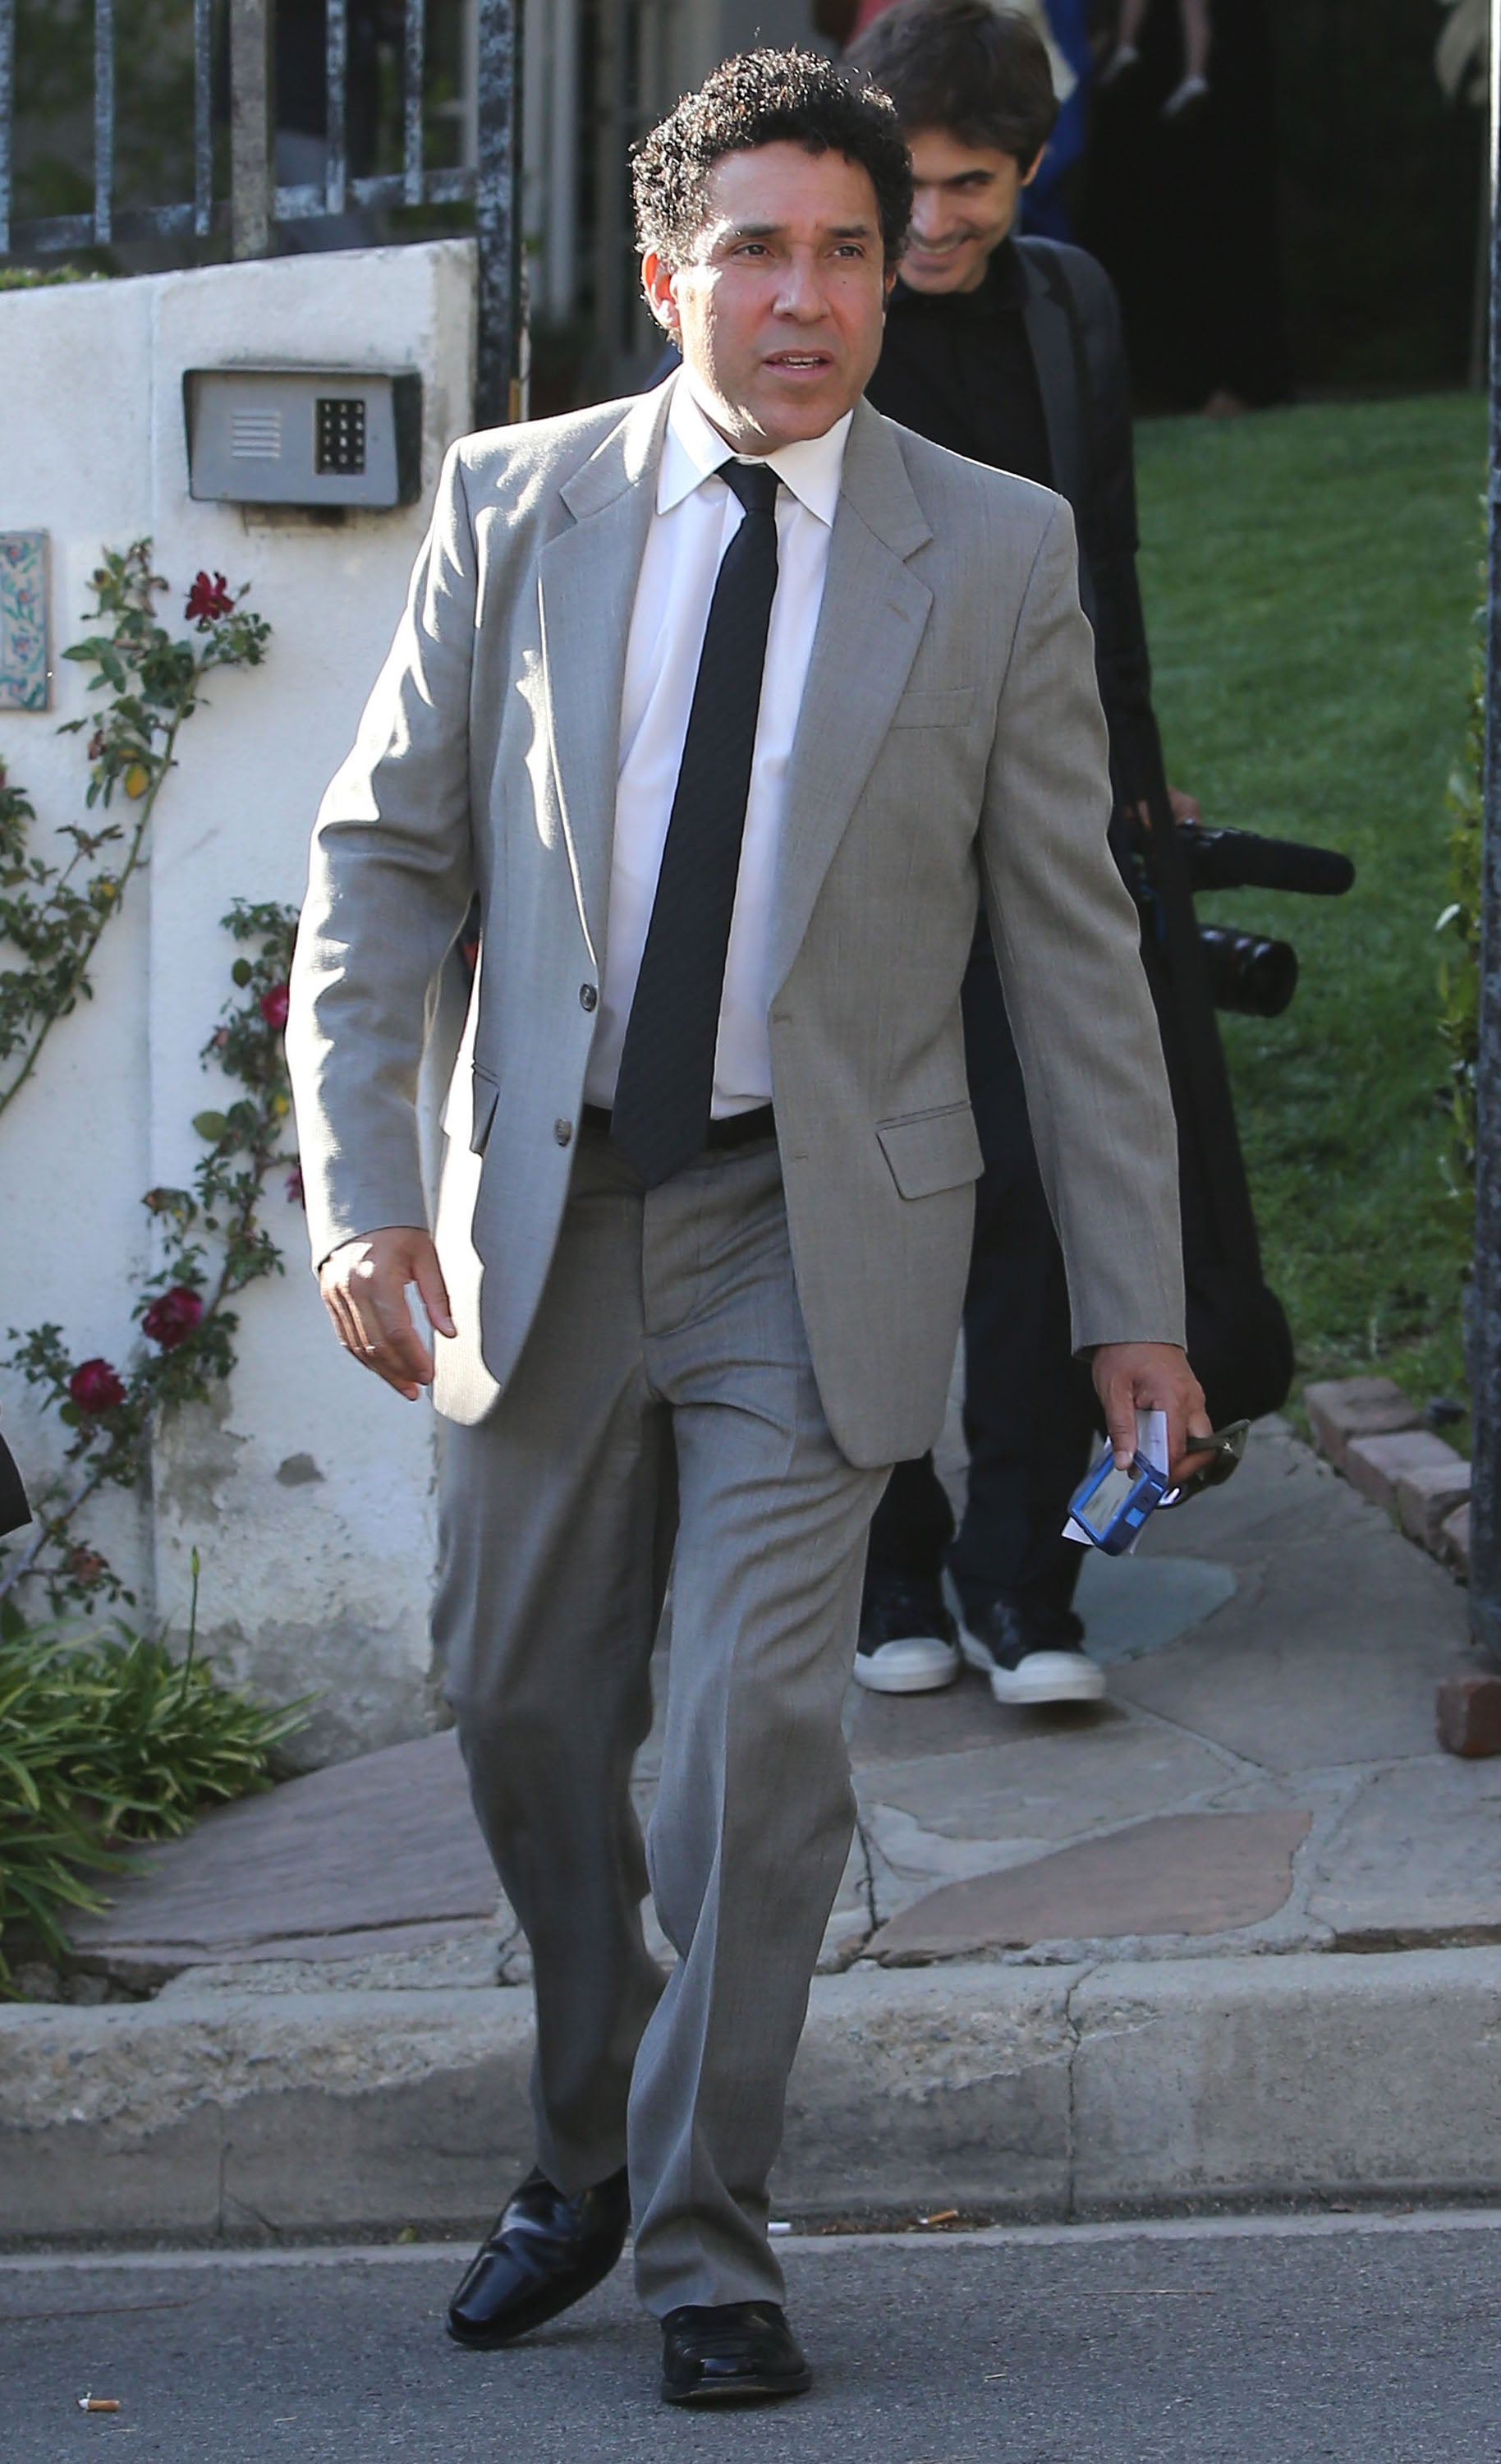 Oscar Nunez wore a gray suit.